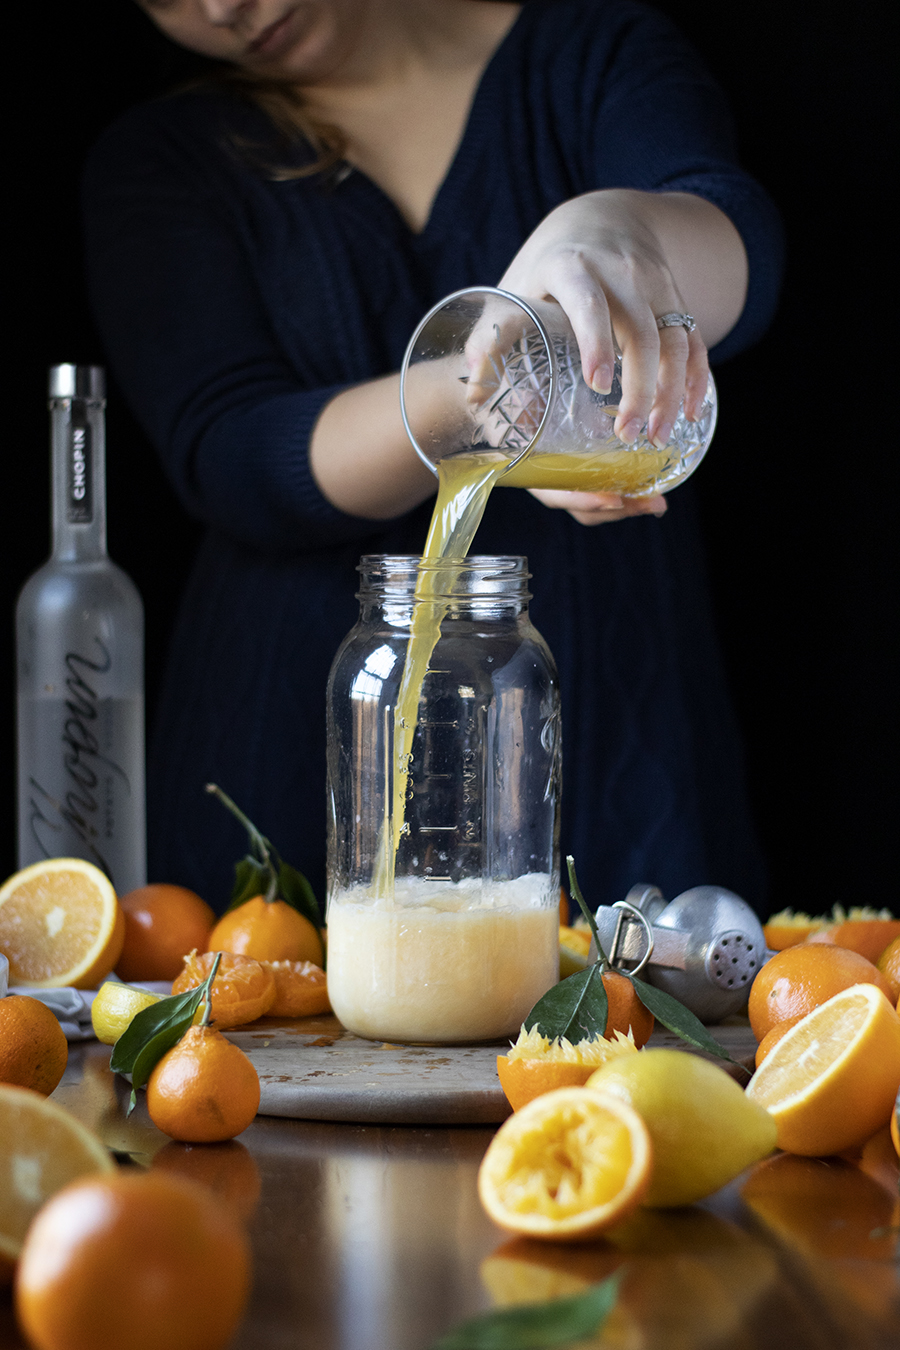 how to make a milk clarified screwdriver with satsuma mandarin juice